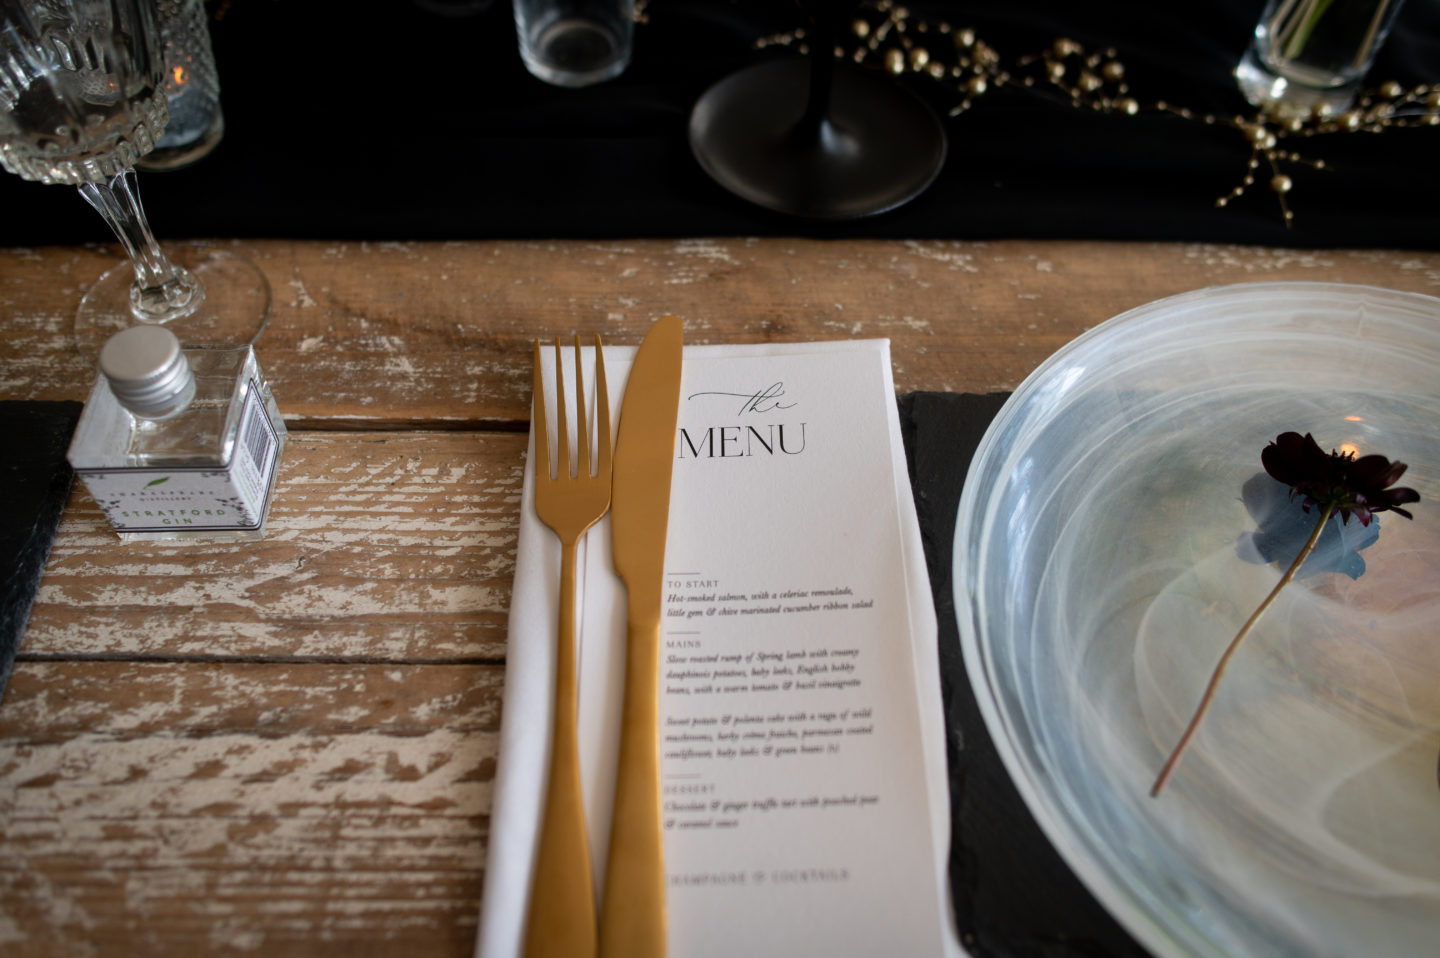 Table place setting with white plate